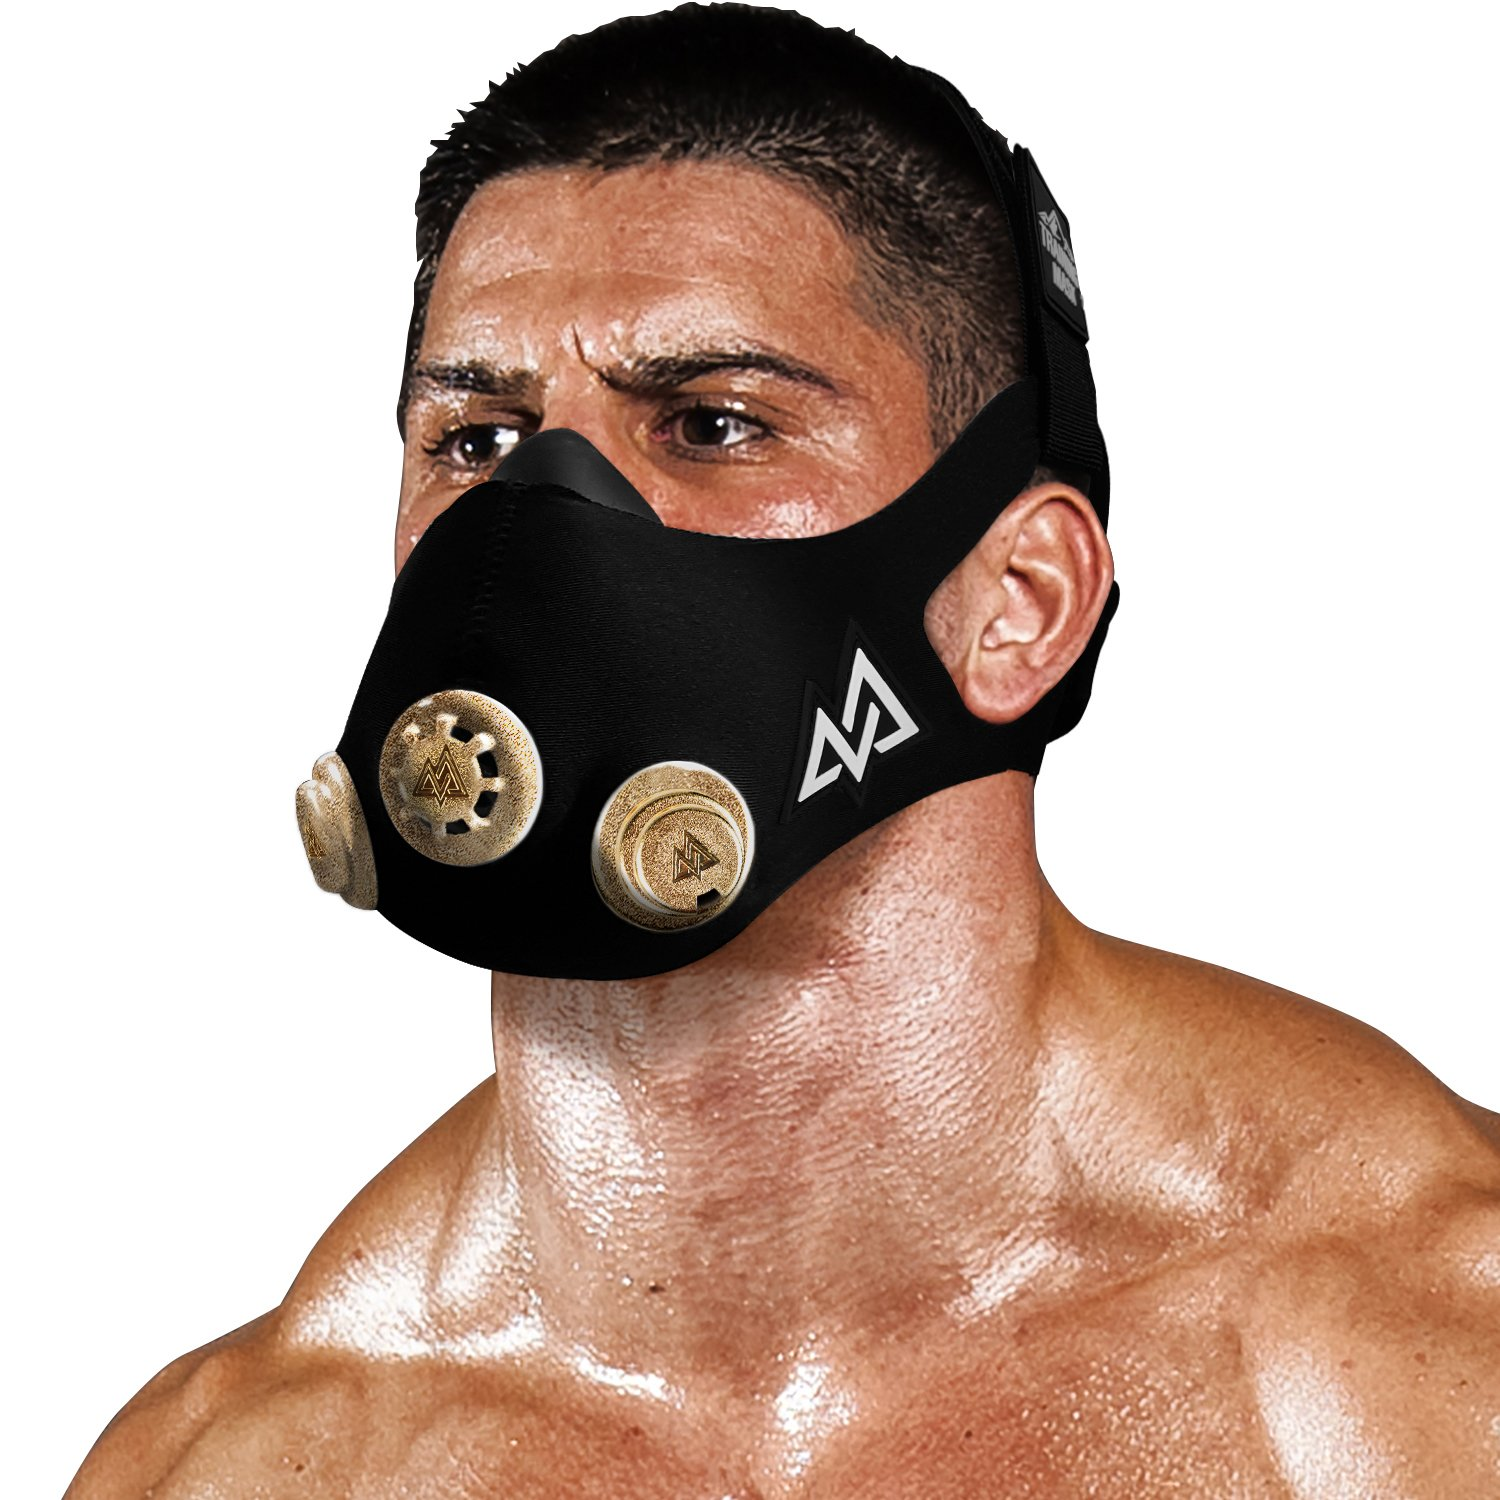 Training Mask - Workout Mask Chrome Series 2.0 for Cardio Endurance and Fitness Breathing Resistance Mask, Running Mask (Gold, Small)